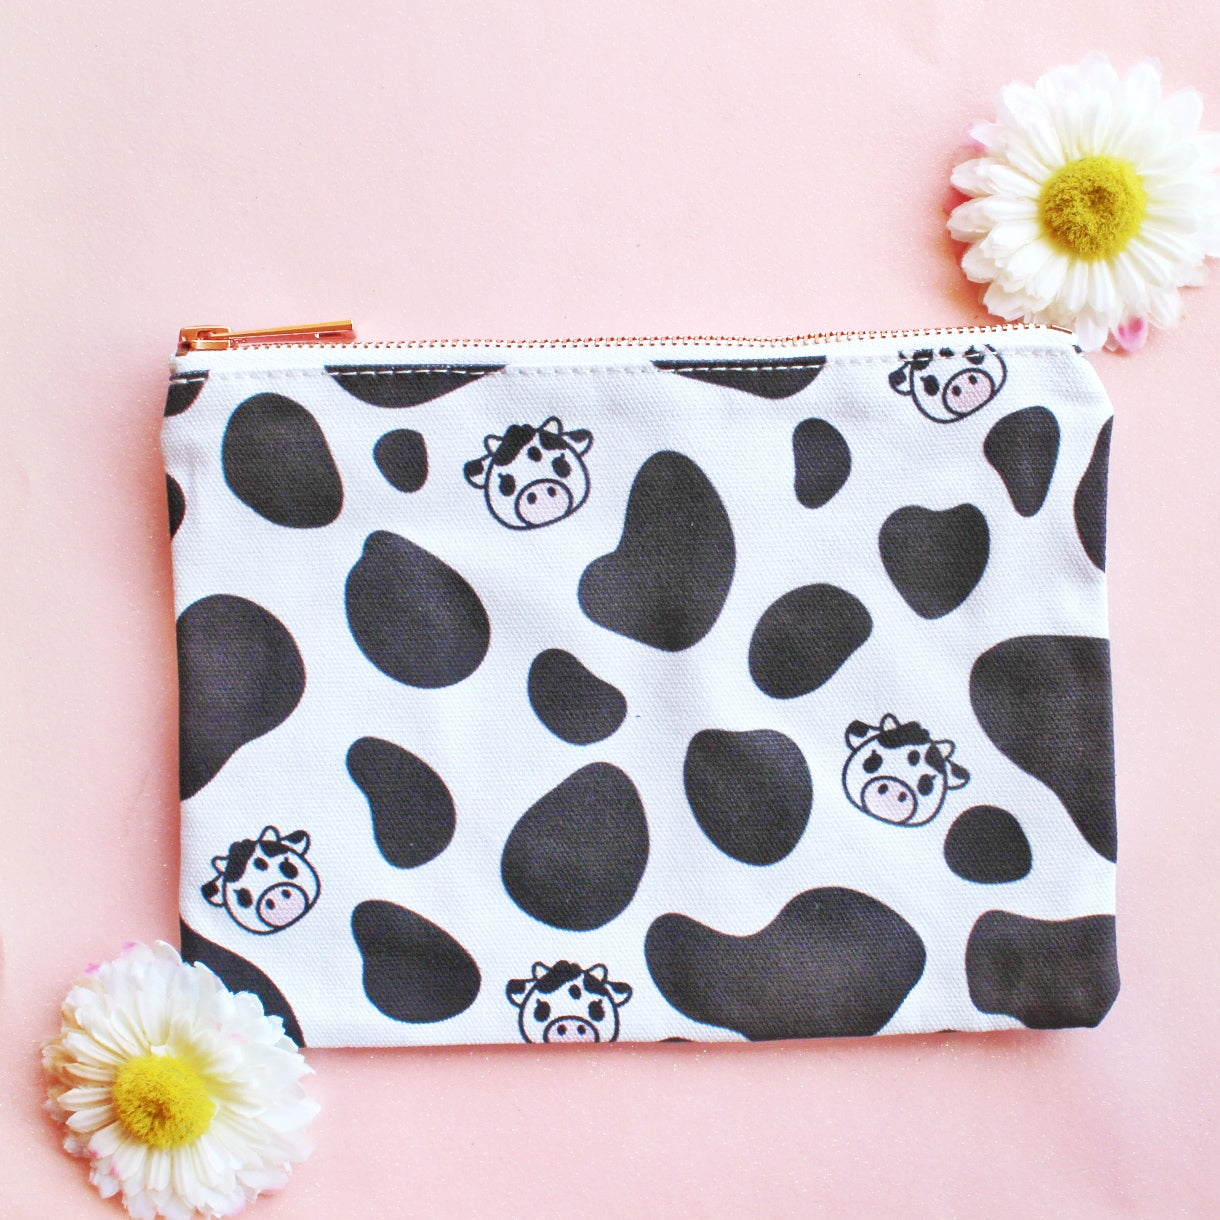 Cow Print MakeupBag